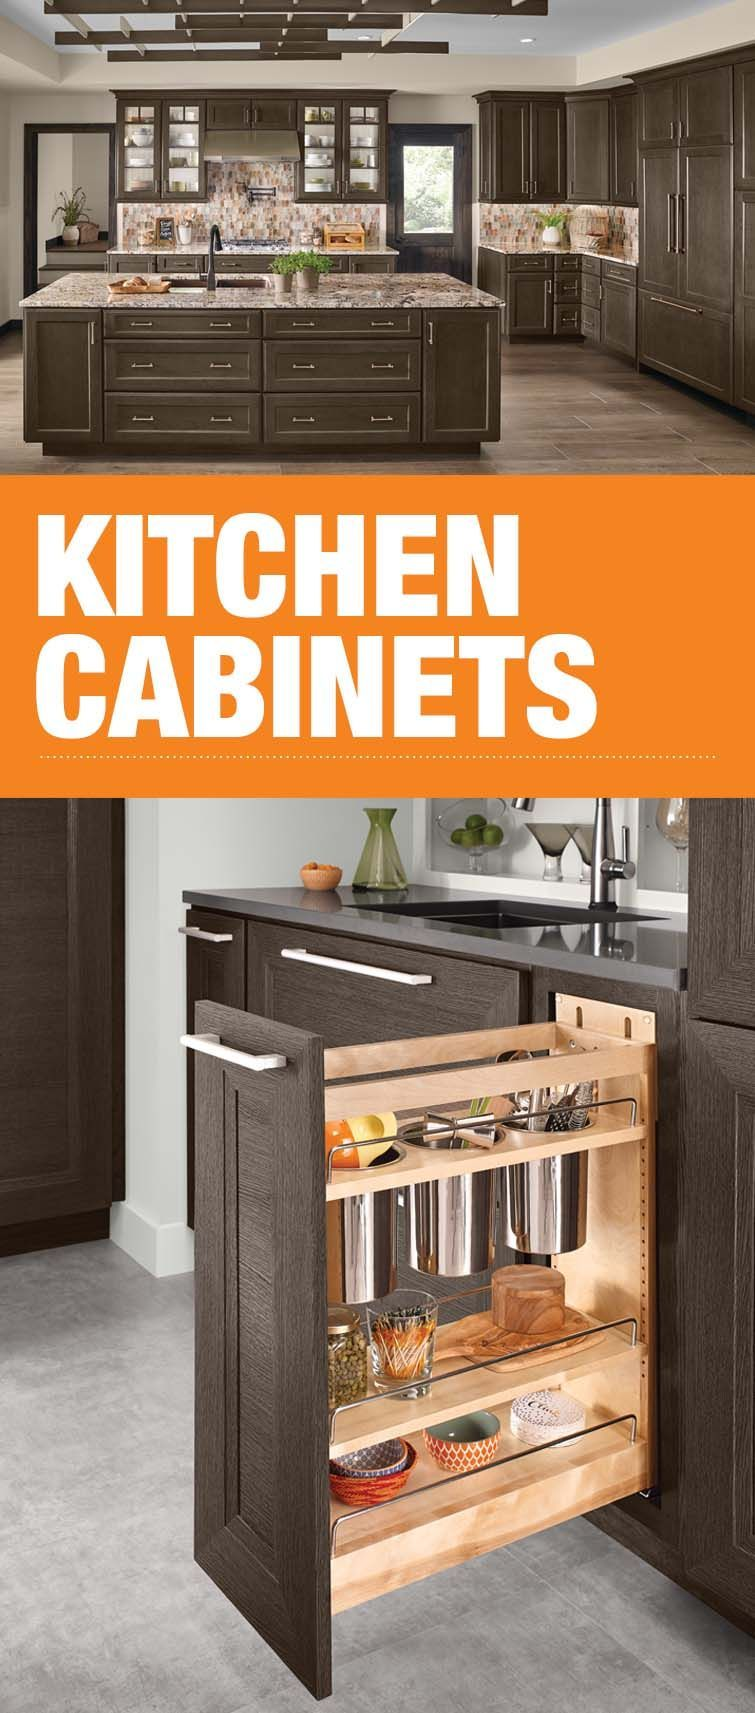 Create Your Ultimate Kitchen By Adding Beauty, Storage And